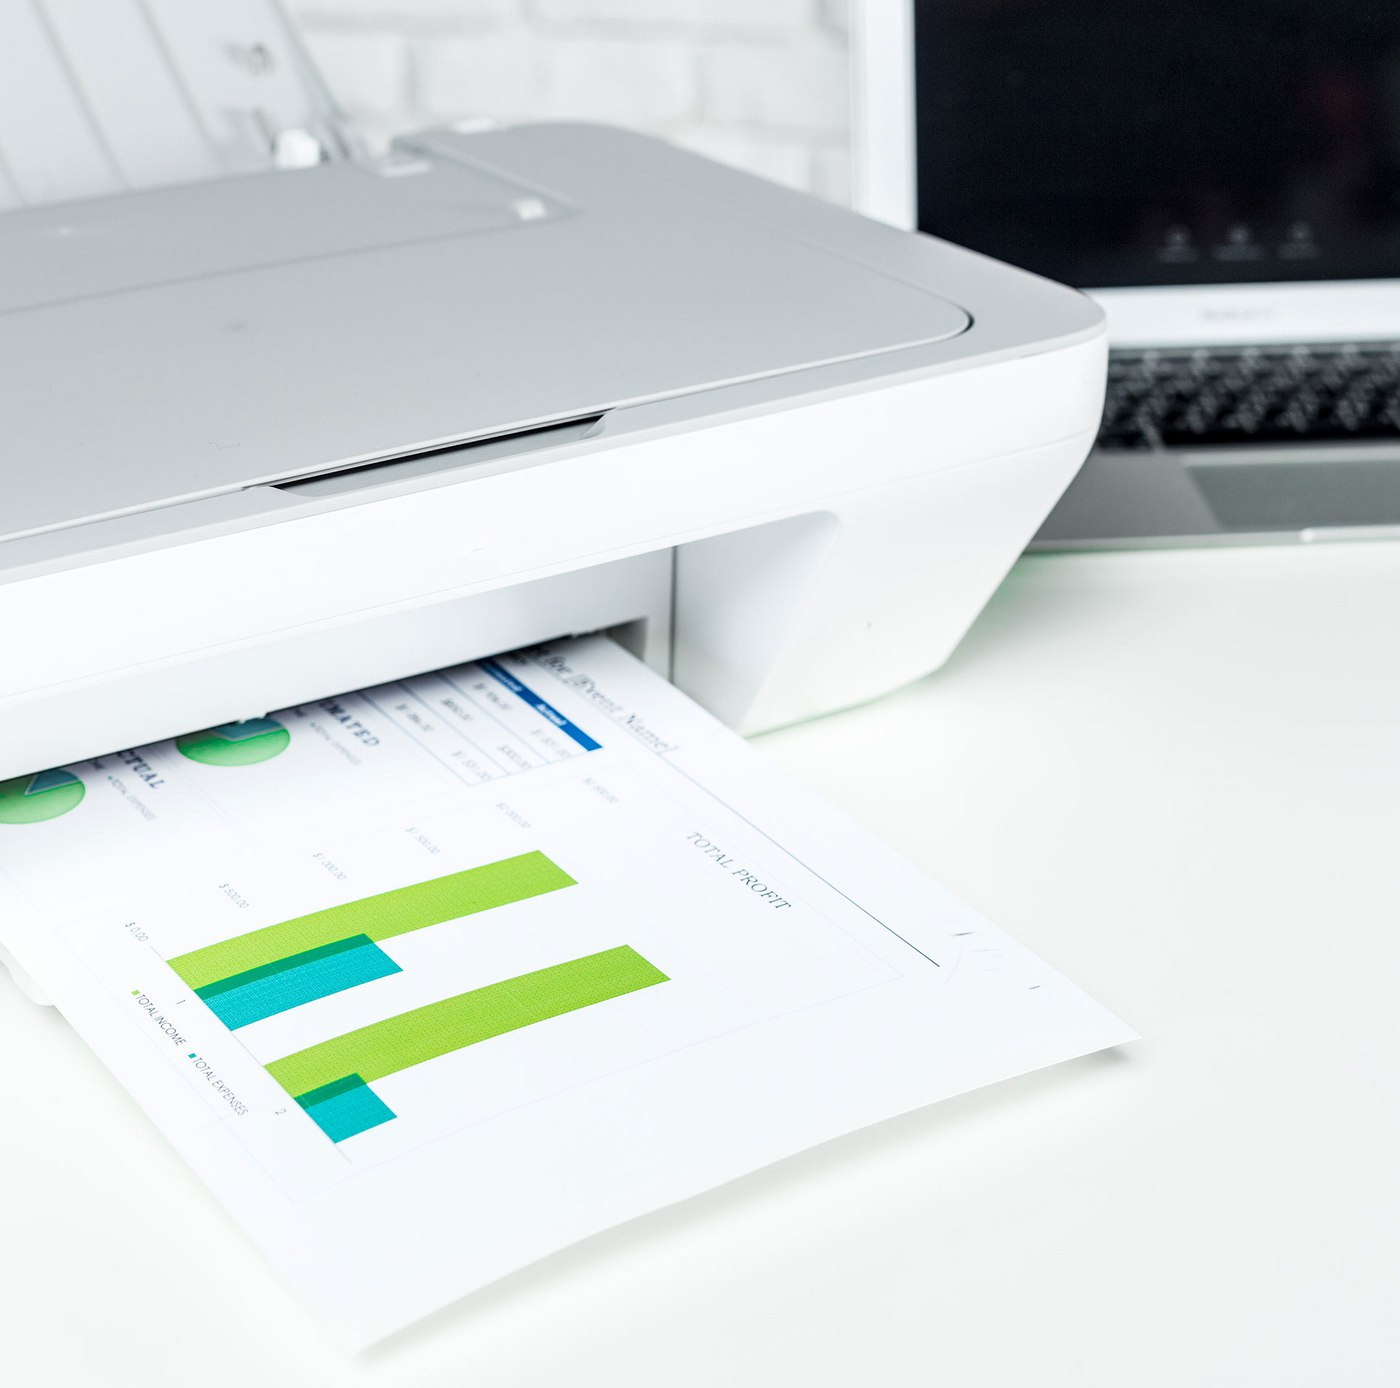 Desktop Printers allow you to provide secure places for confidential documents - like HR records - to be printed away from any prying eyes.